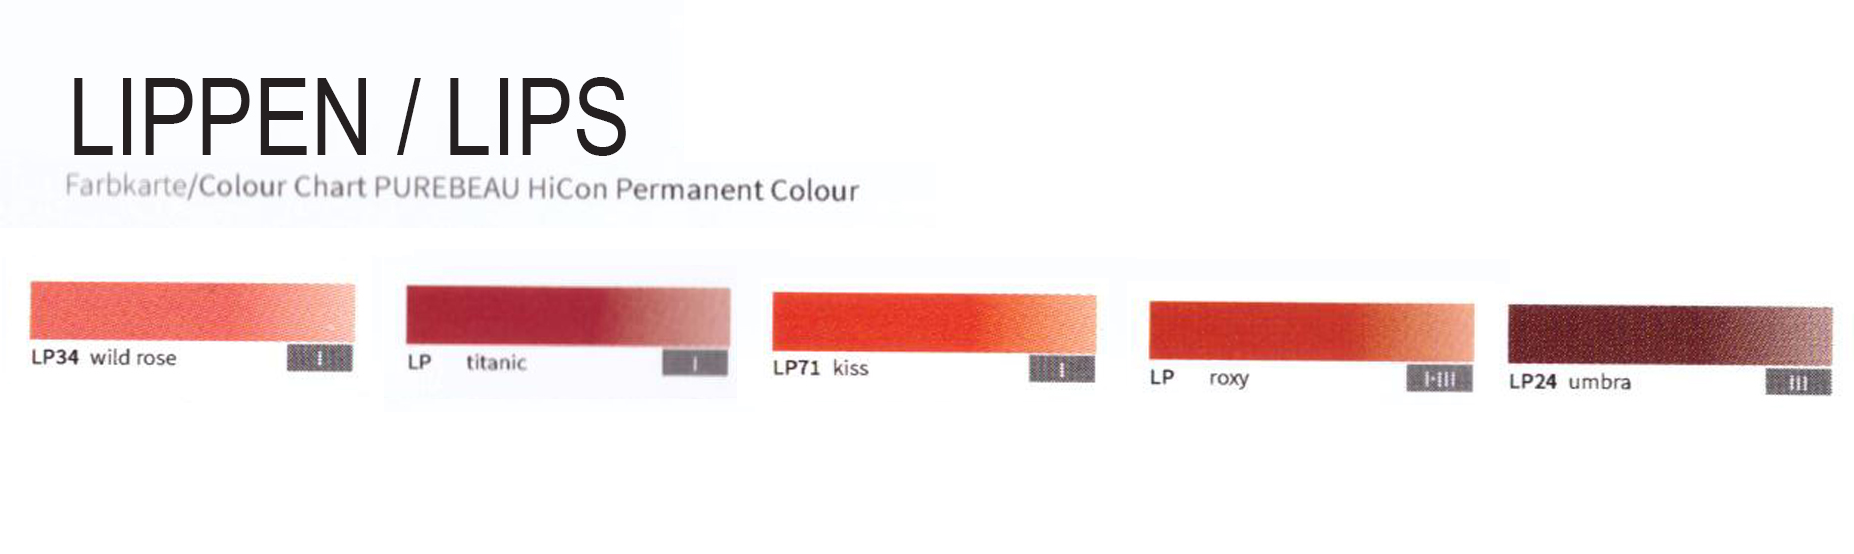 purebeau_lip_pigment_color2-1.png